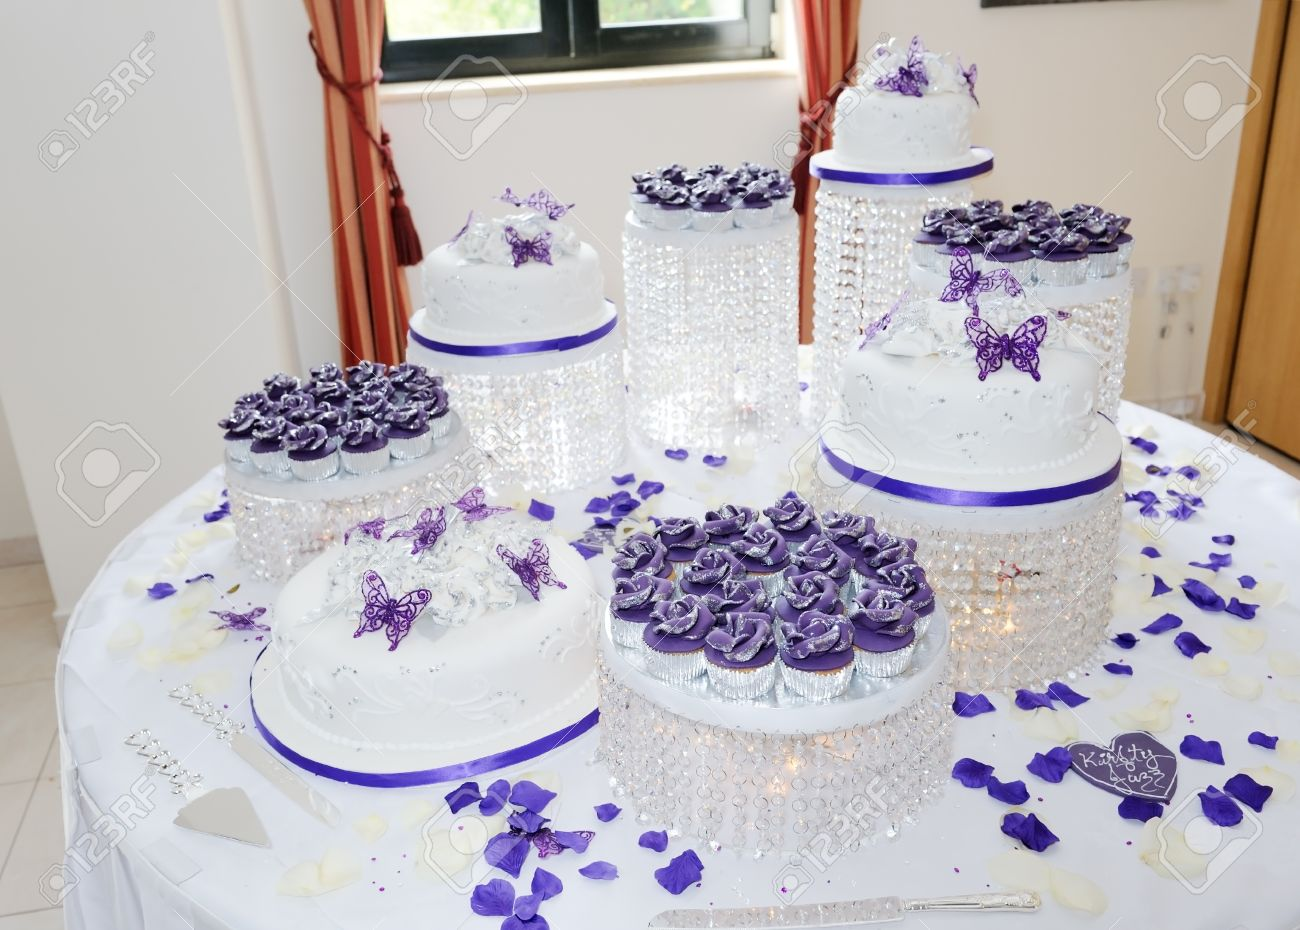 Massive White And Purple Asian Wedding Cake At Reception Stock Photo